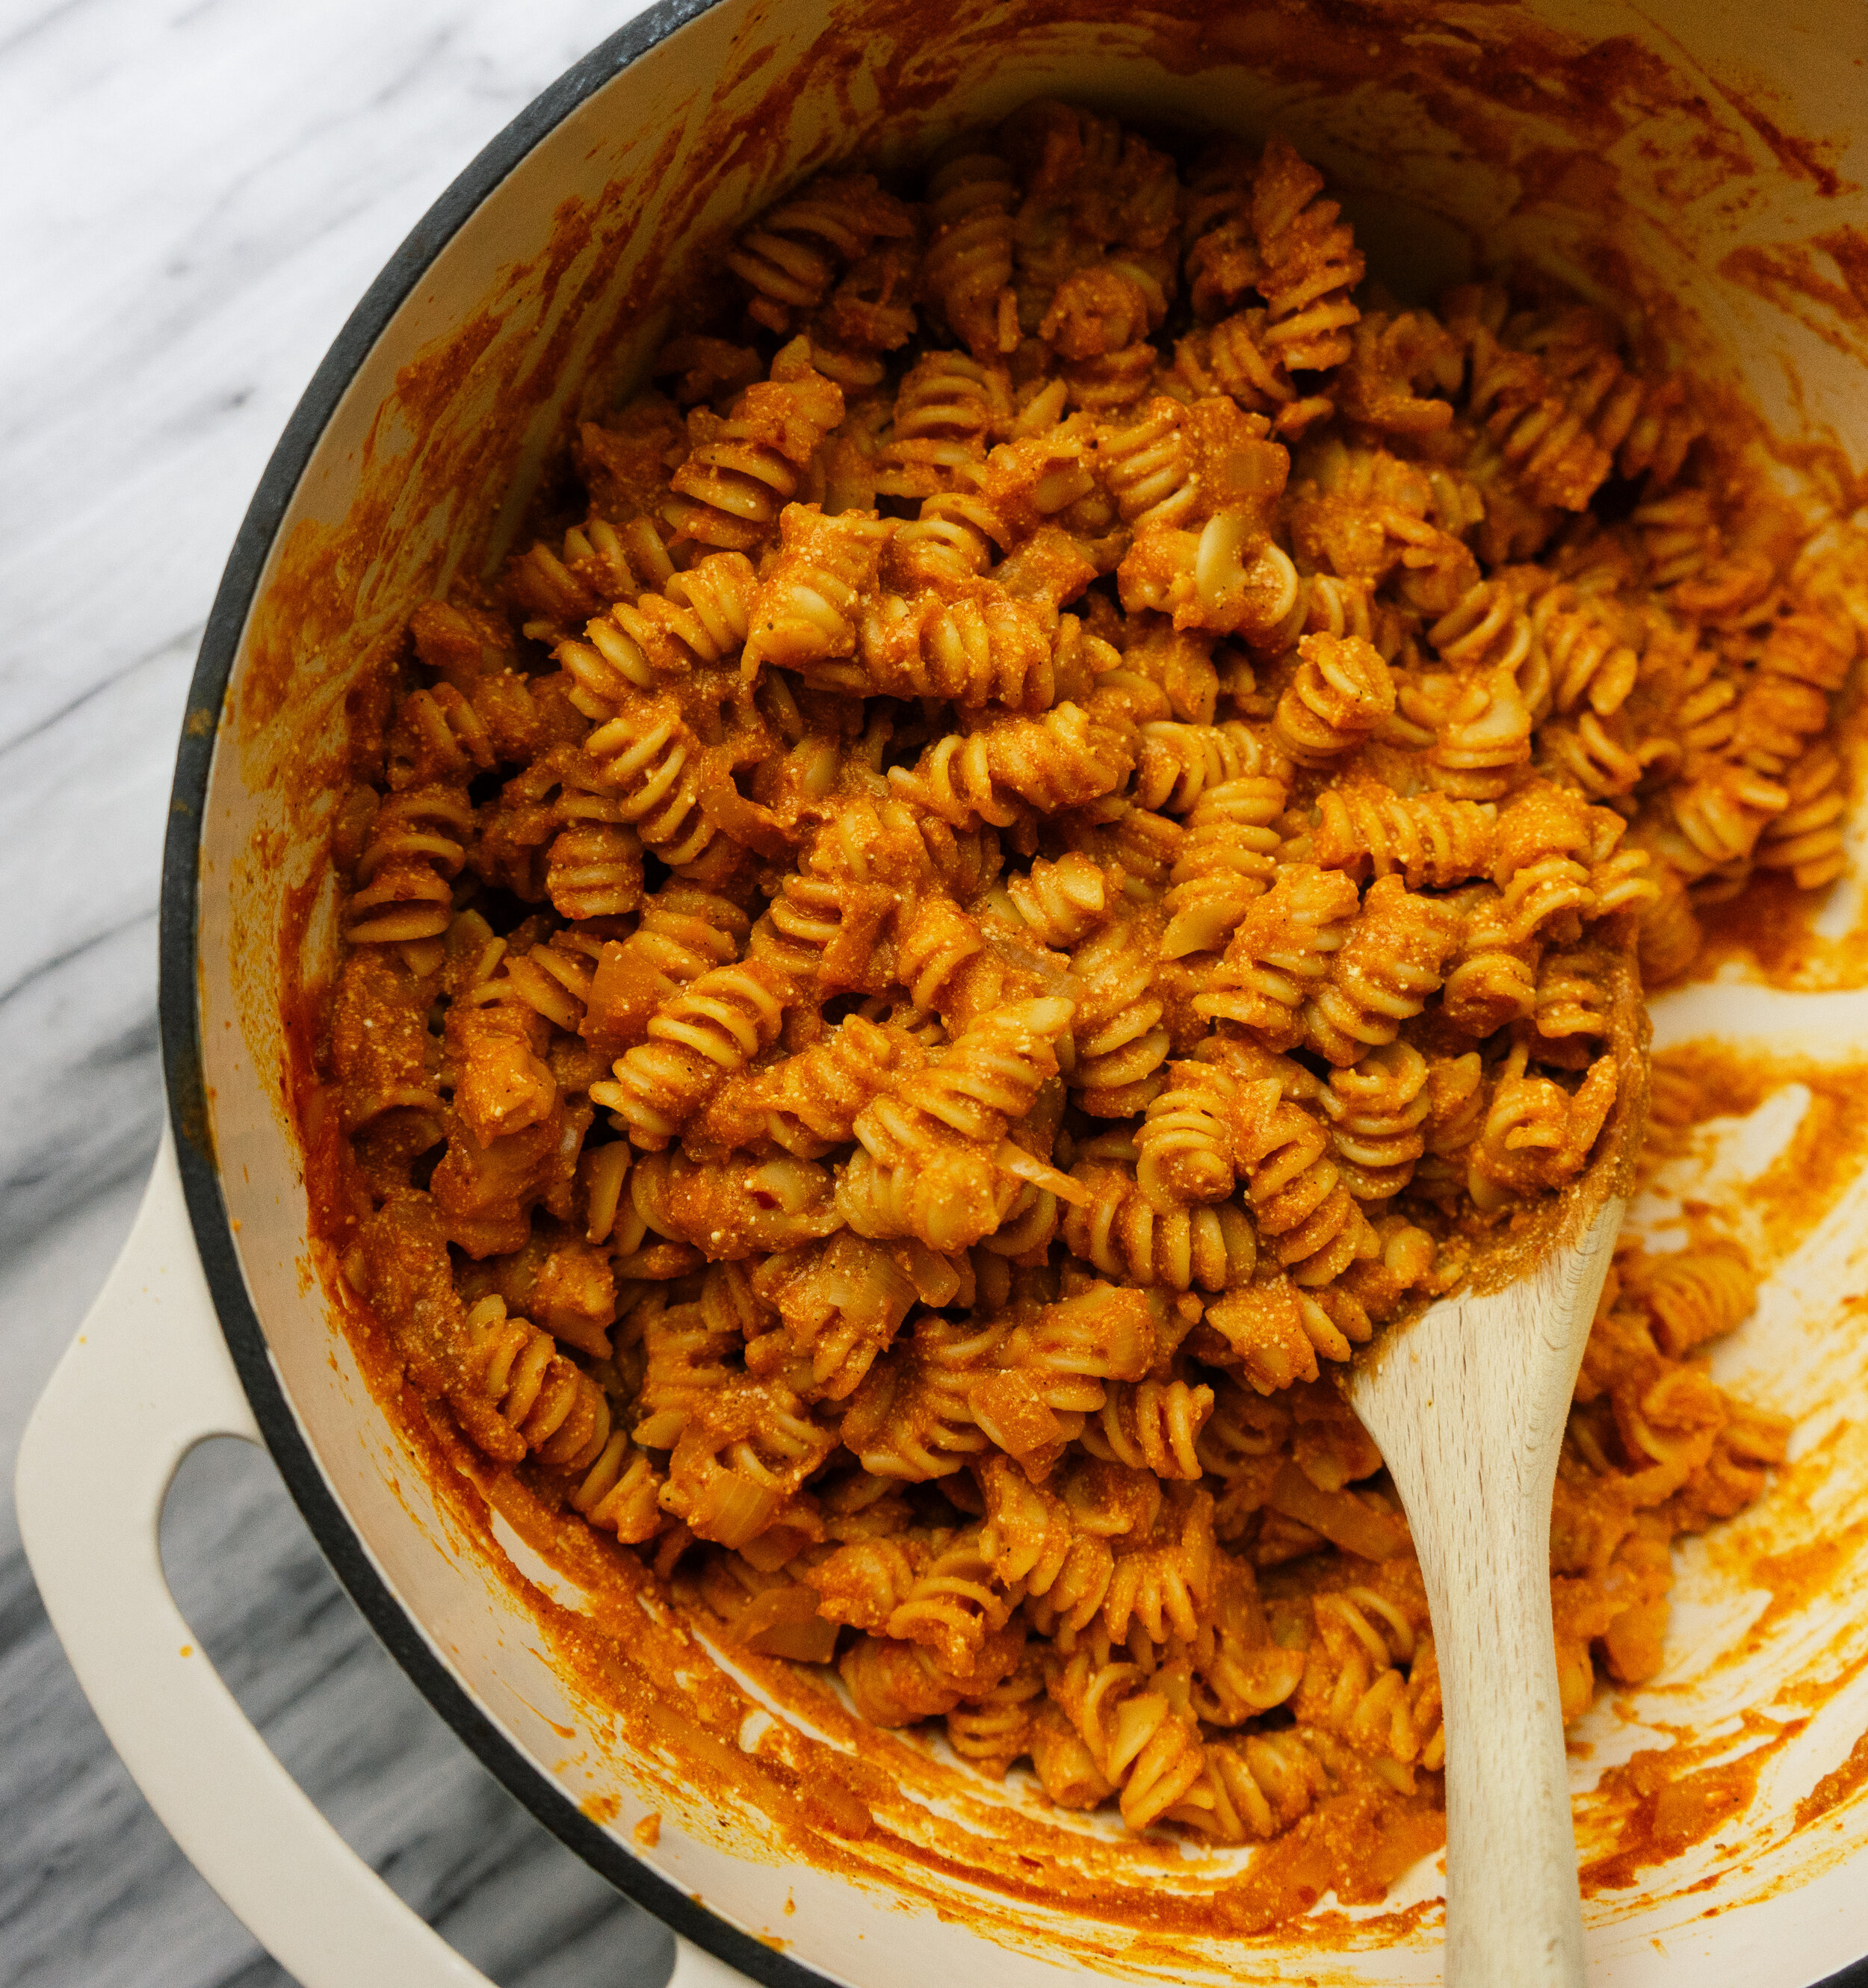 This spicy pumpkin one pot pasta is a quick and easy 30 minute meal. This savory pumpkin recipe is perfect for a fall weeknight dinner or to fuel your trick-or-treaters before they head out!